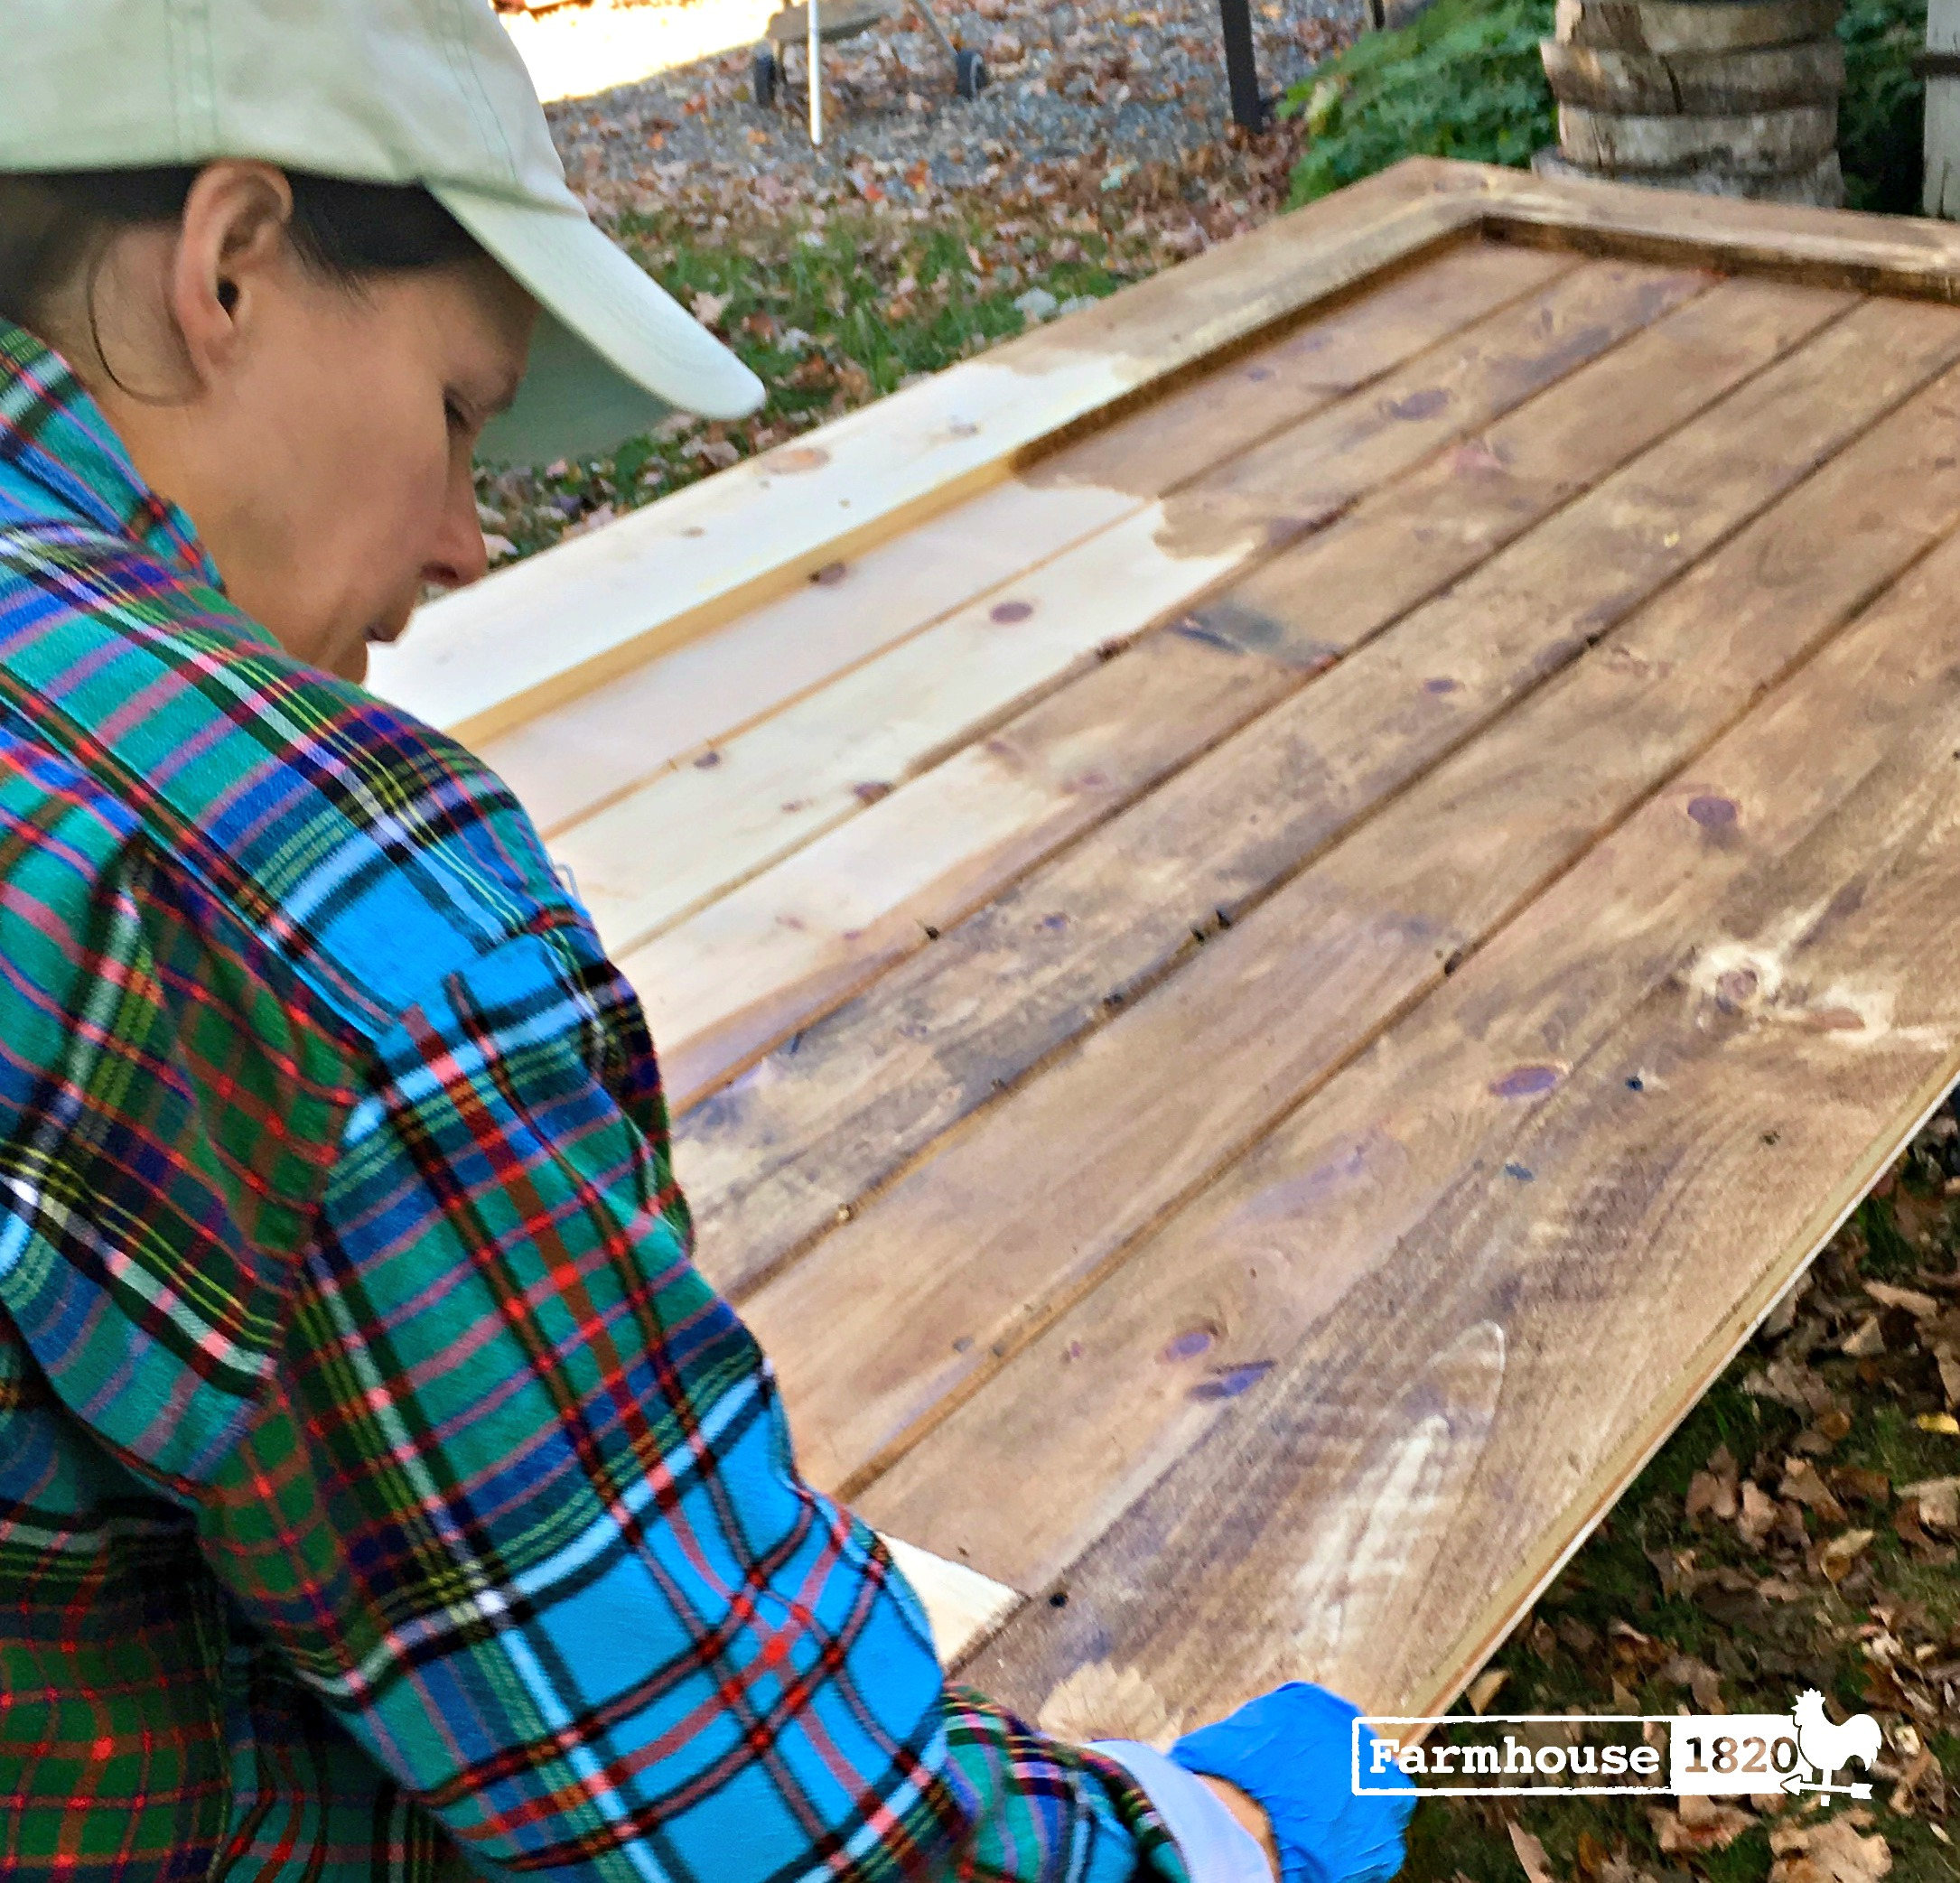 barn door - mixing stain colors to get the right look